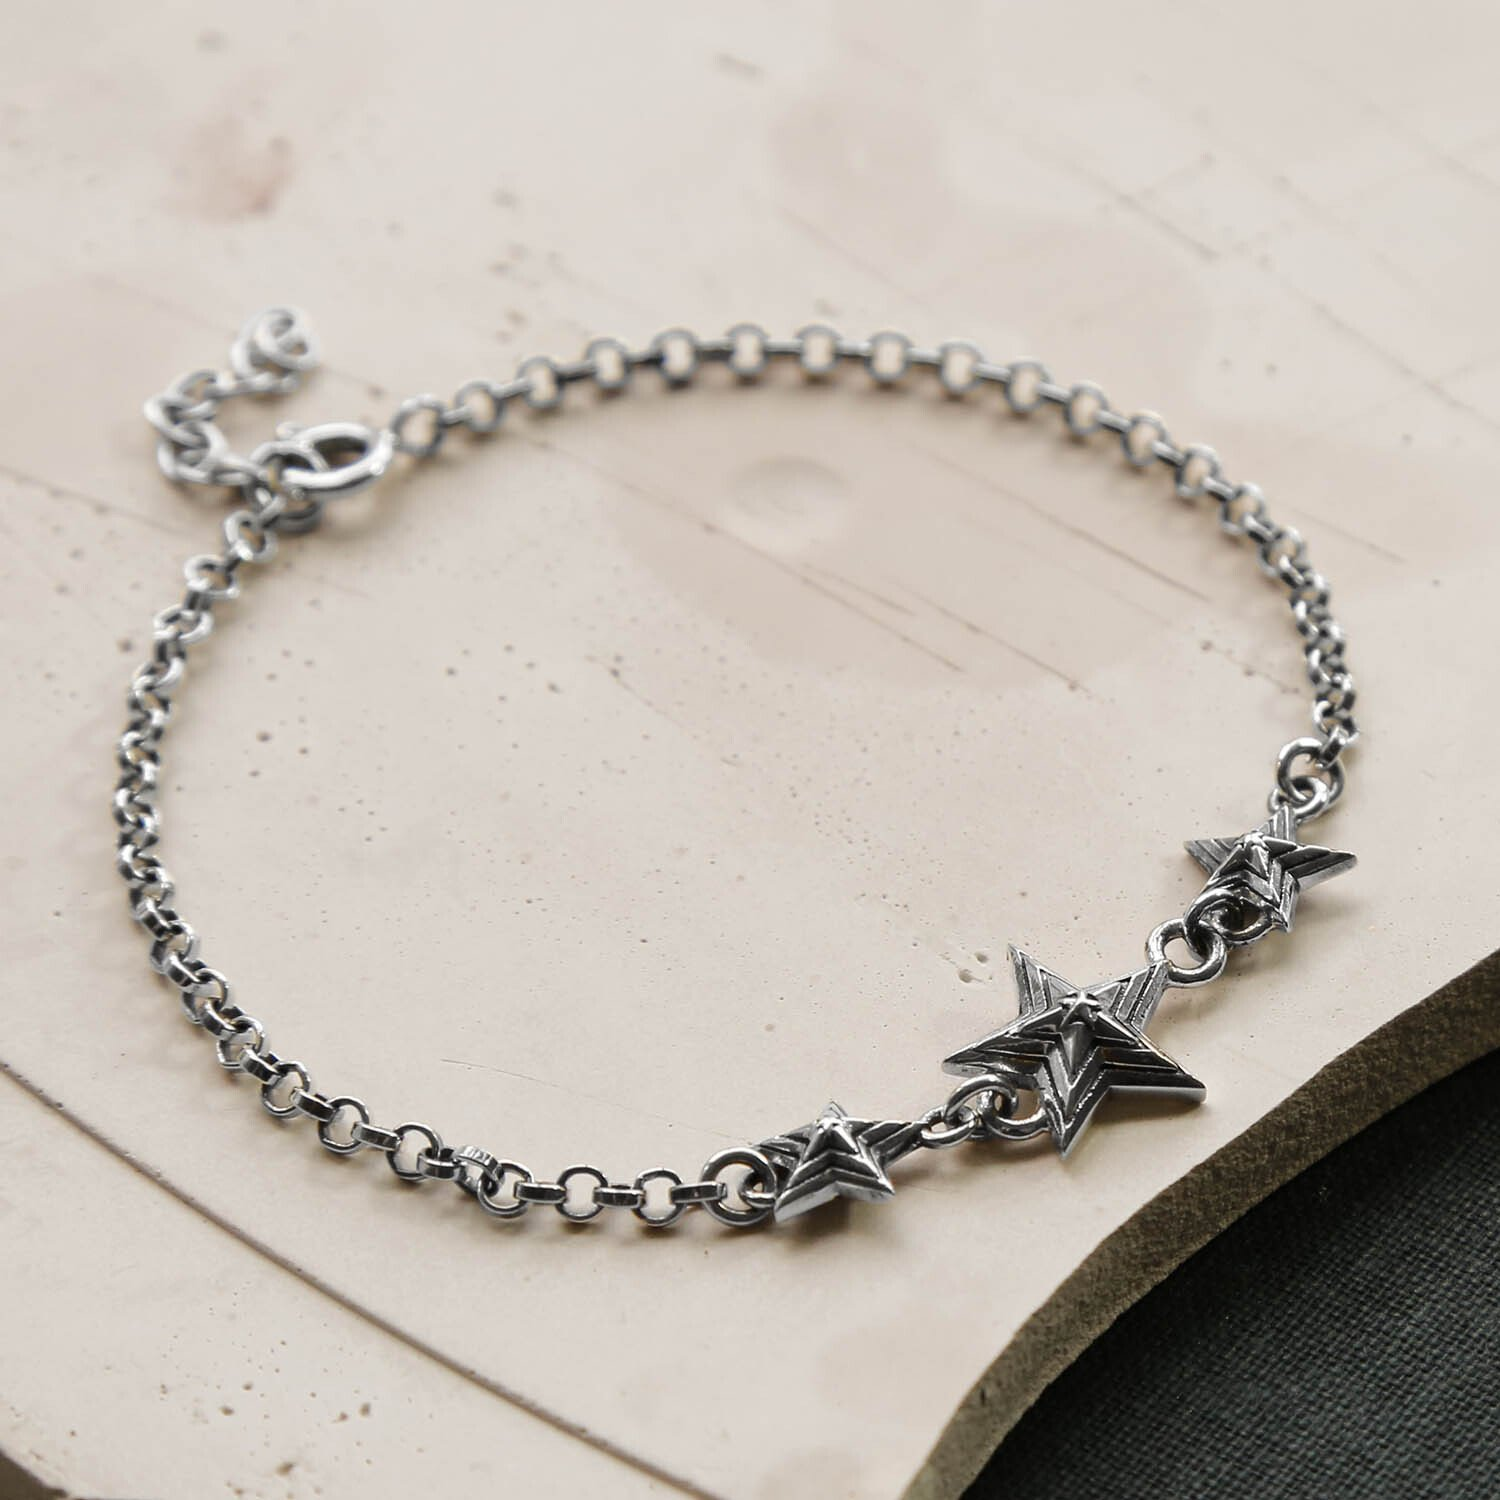 Oxidised Silver Chain Bracelet with 3 Silver Oxidised Stars on a creamy, pastel Plaster Background